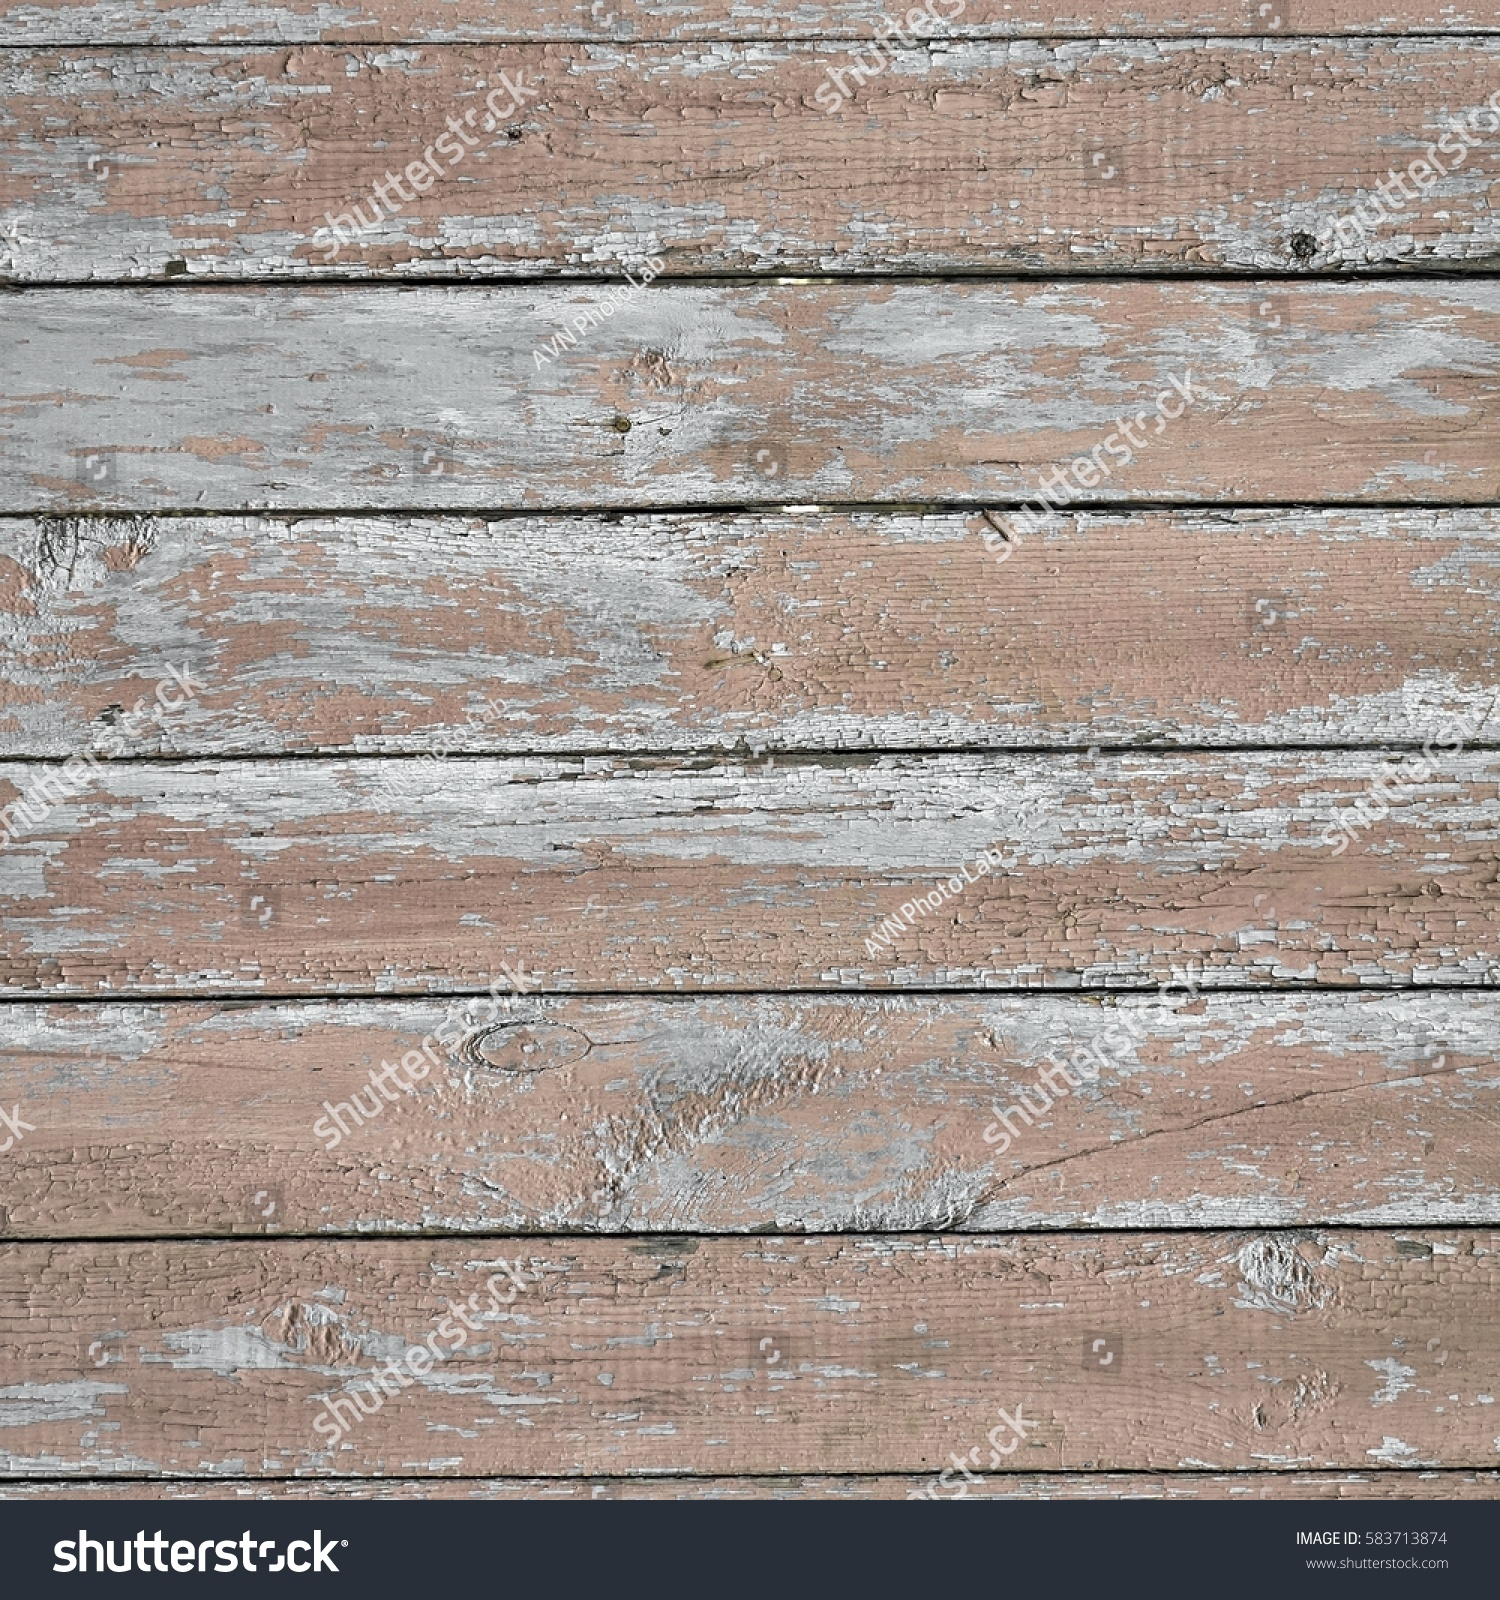 Old Barn Wood Square Background Grey Stock Photo 583713874 Shutterstock